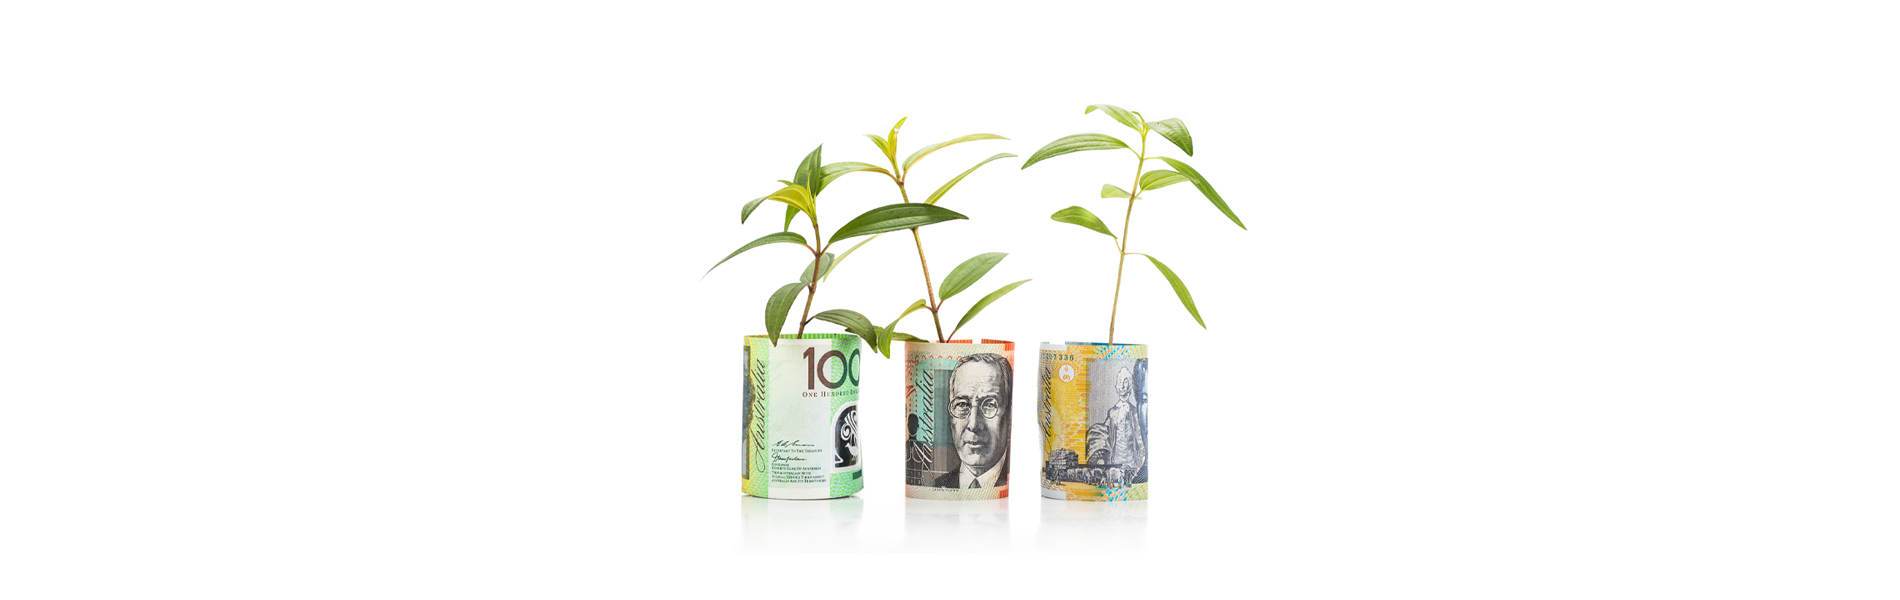 Banner-2-australianmoneygrowth-e1